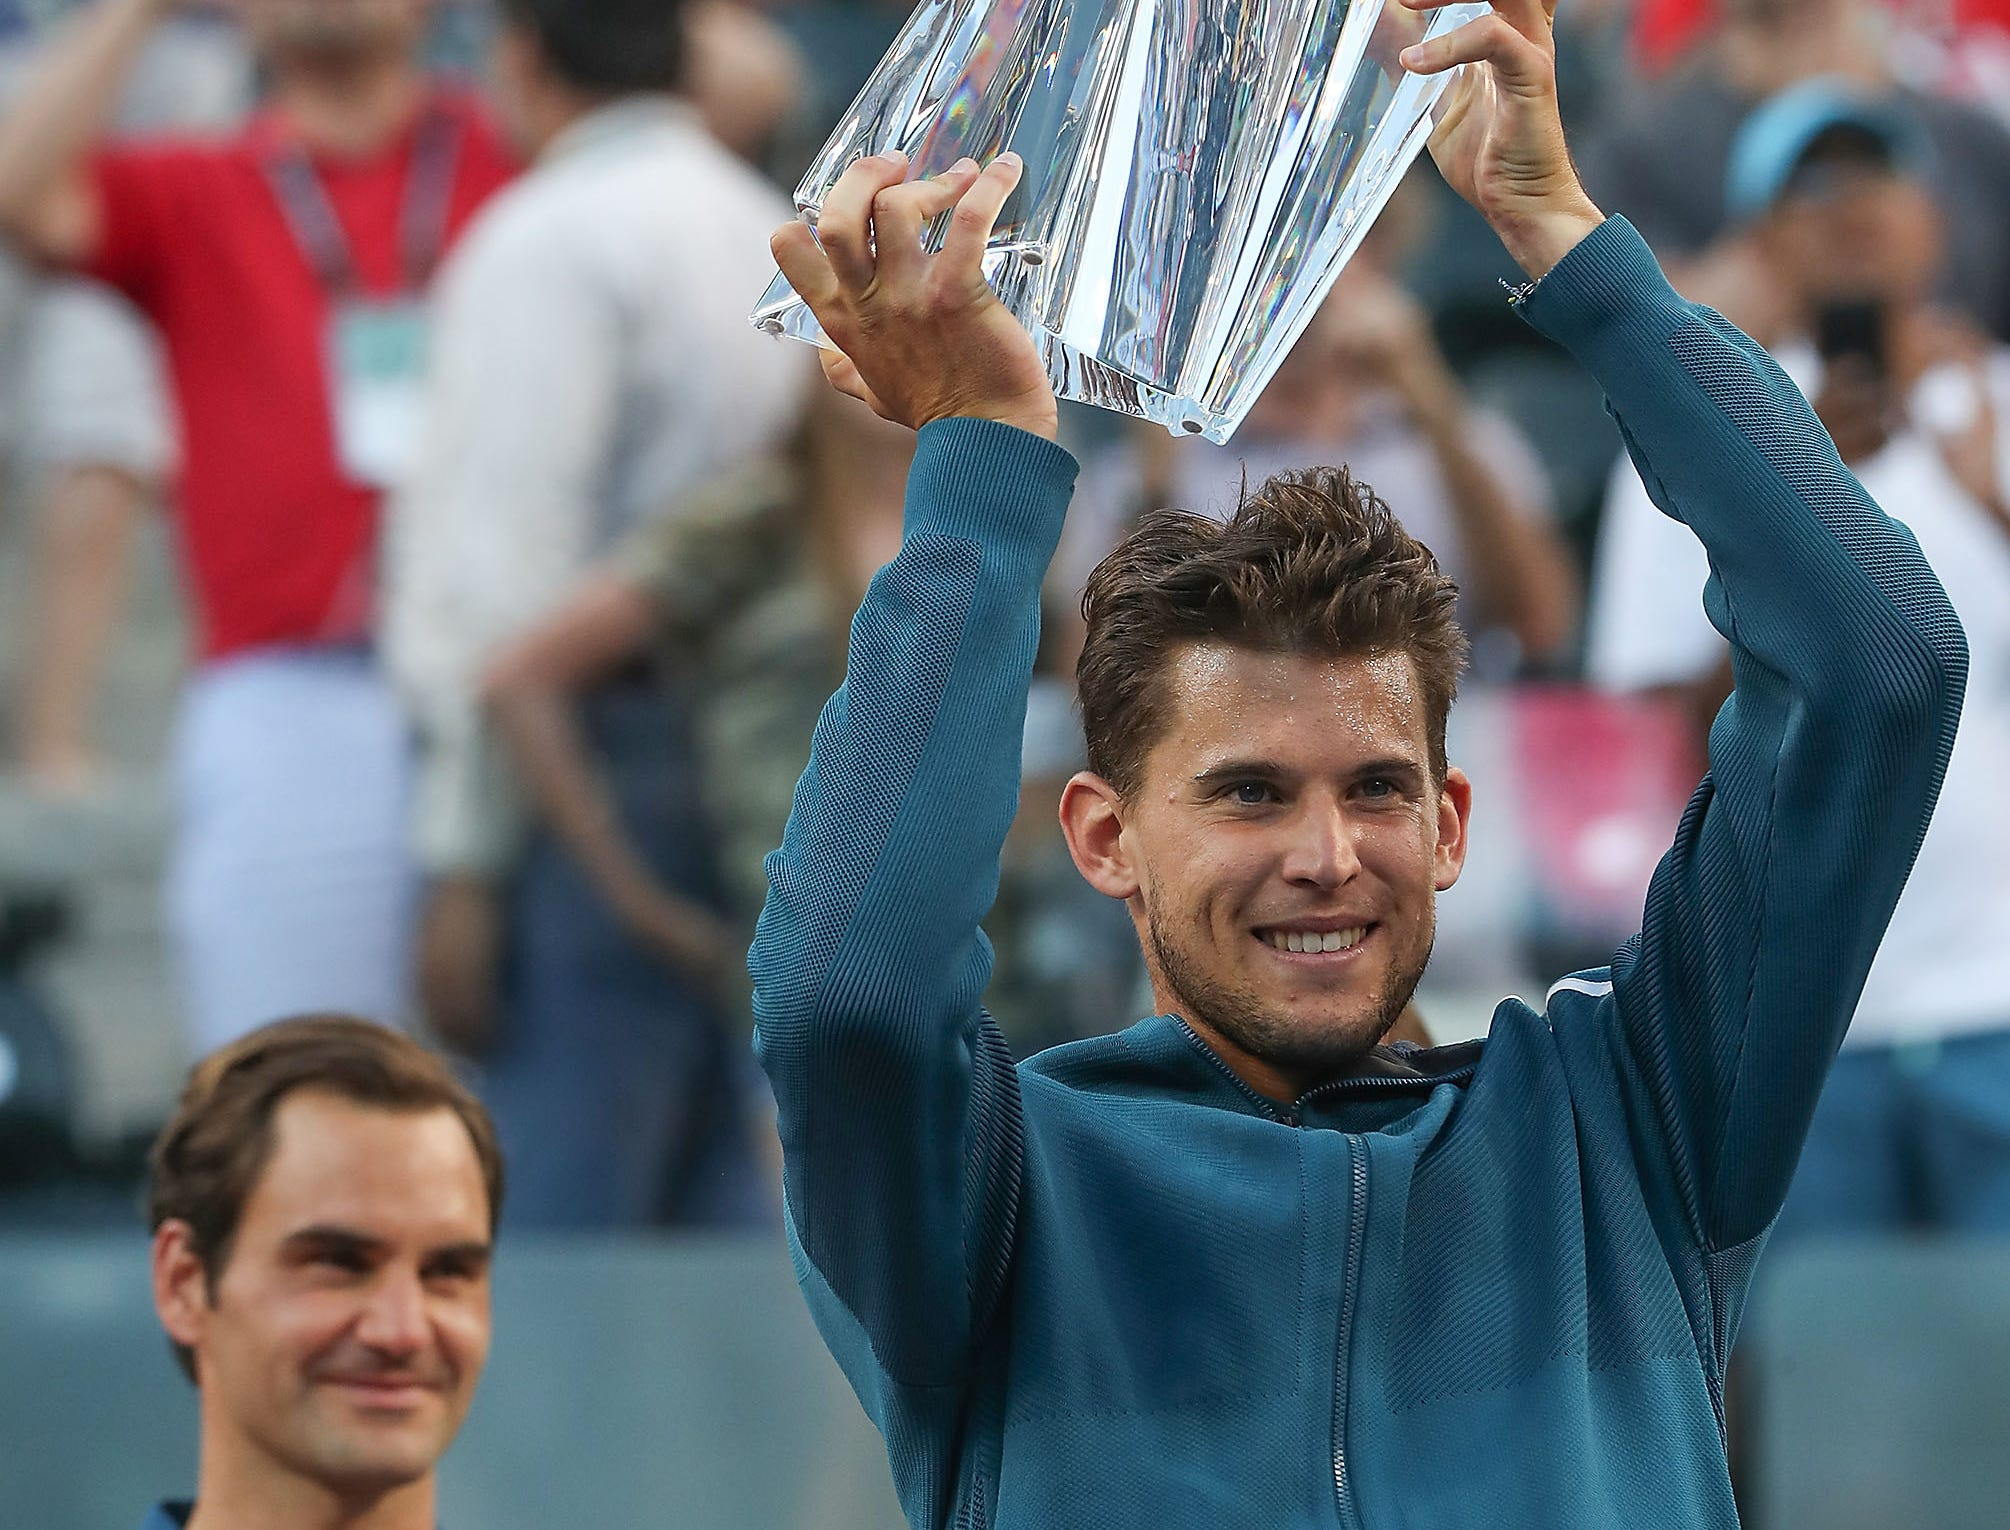 Dominic Thiem lifts the BNP Paribas Open tropyhy after his win over Roger Federer at the Paribas Open final in Indian Wells, March 17, 2019.